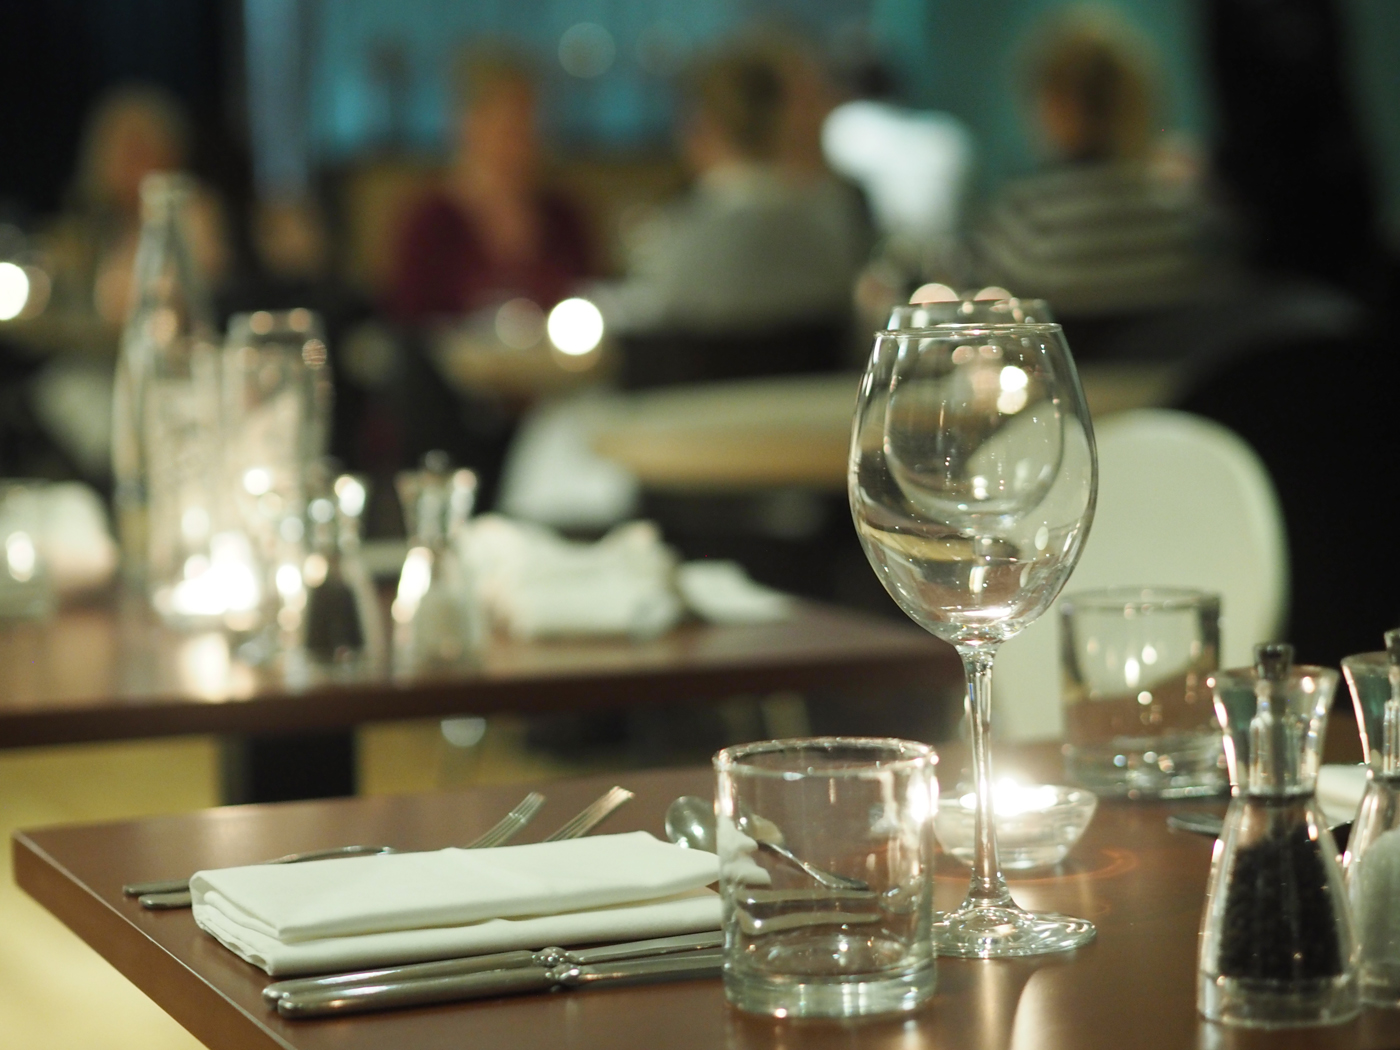 LIFEHOUSE HOTEL AND SPA RESTAURANT